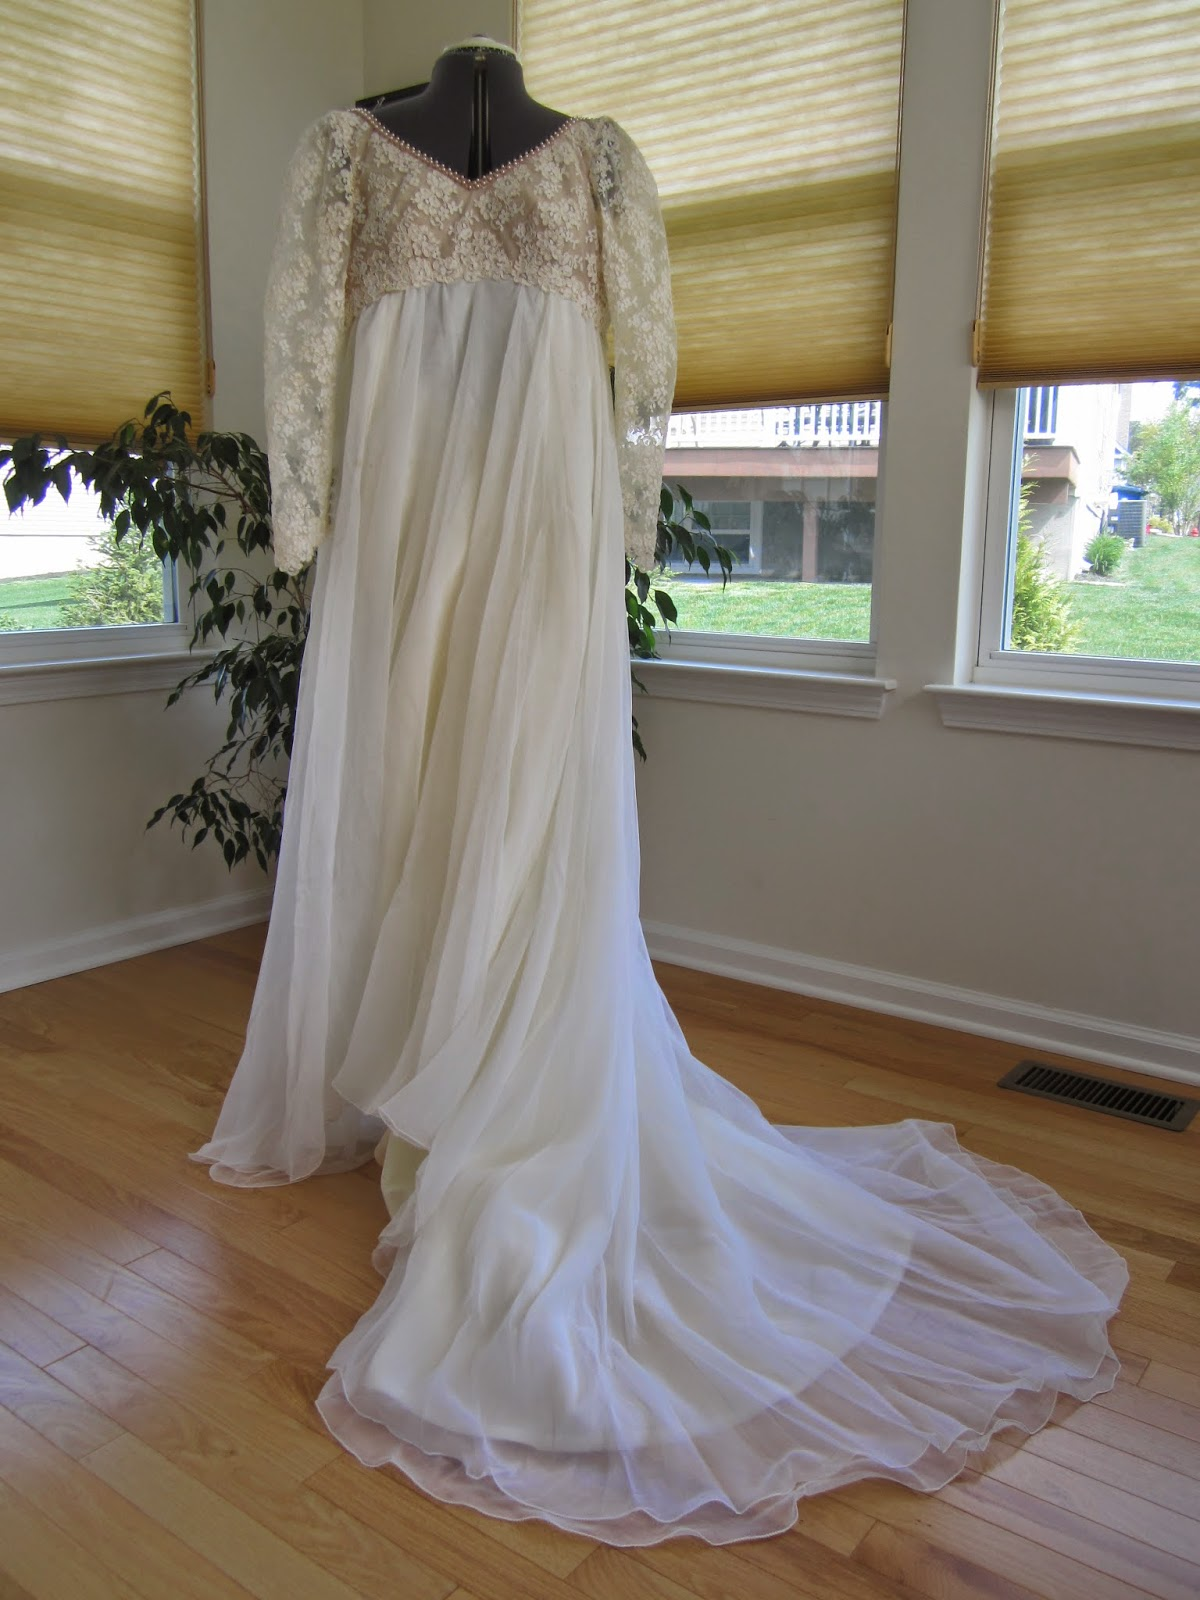 Make Christening Gown From Wedding Gown | Money and Finance